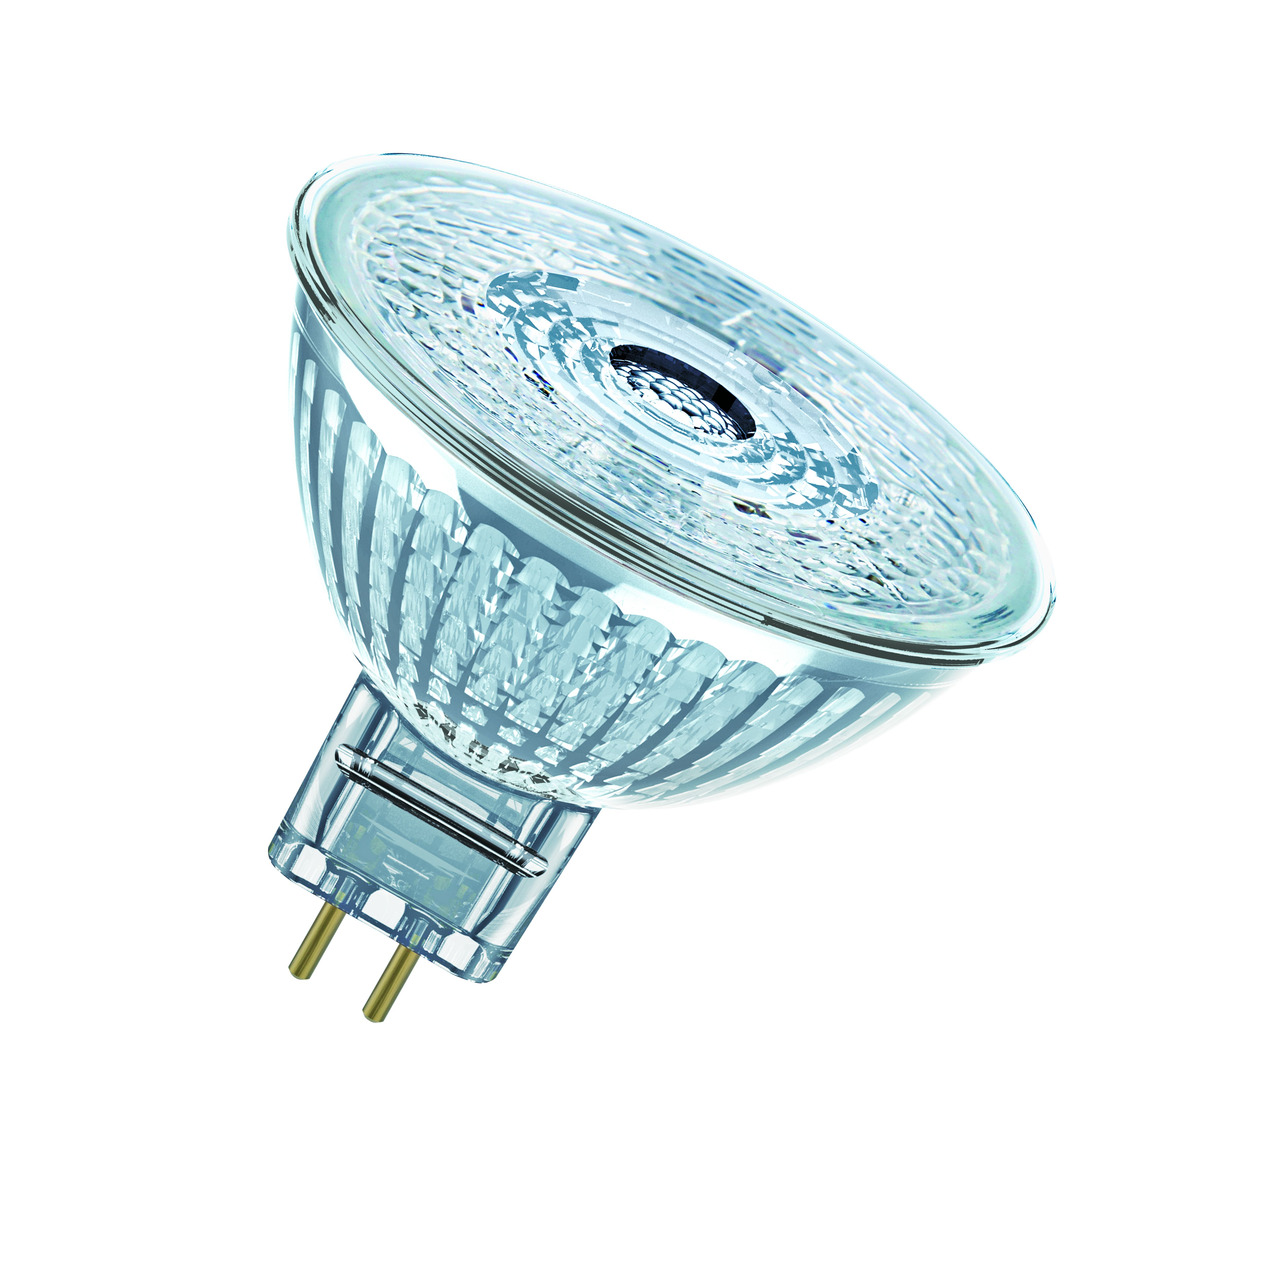 OSRAM 8-W-LED-Lampe MR51-GU5-3- 621 lm- neutralweiss- 36- 12 V